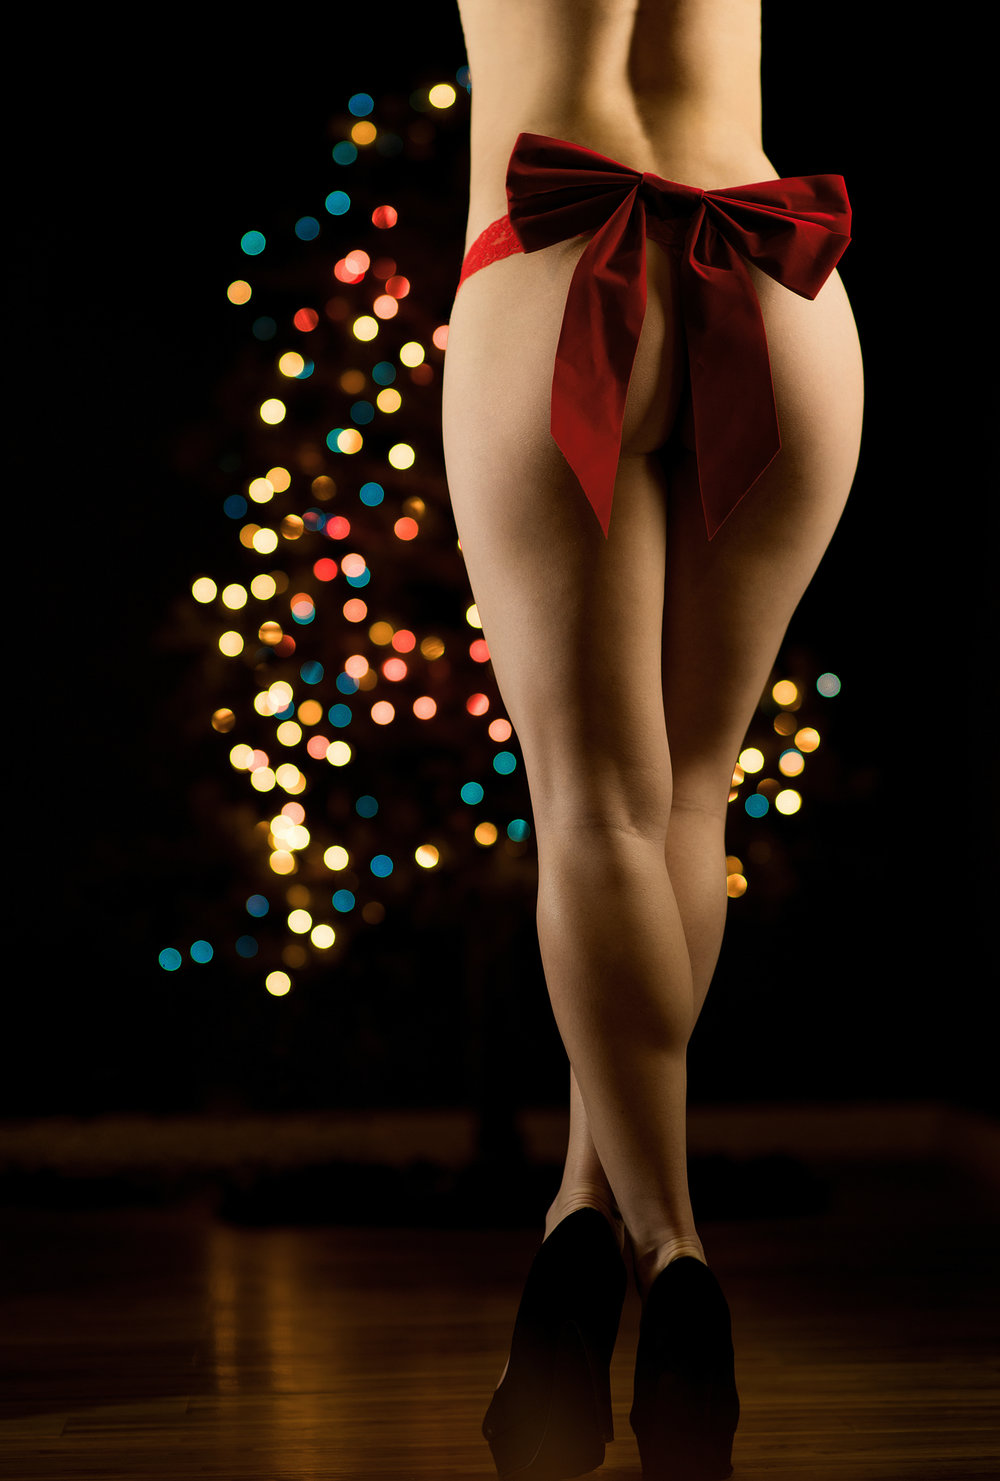 Merry Christmas Boudoir photography